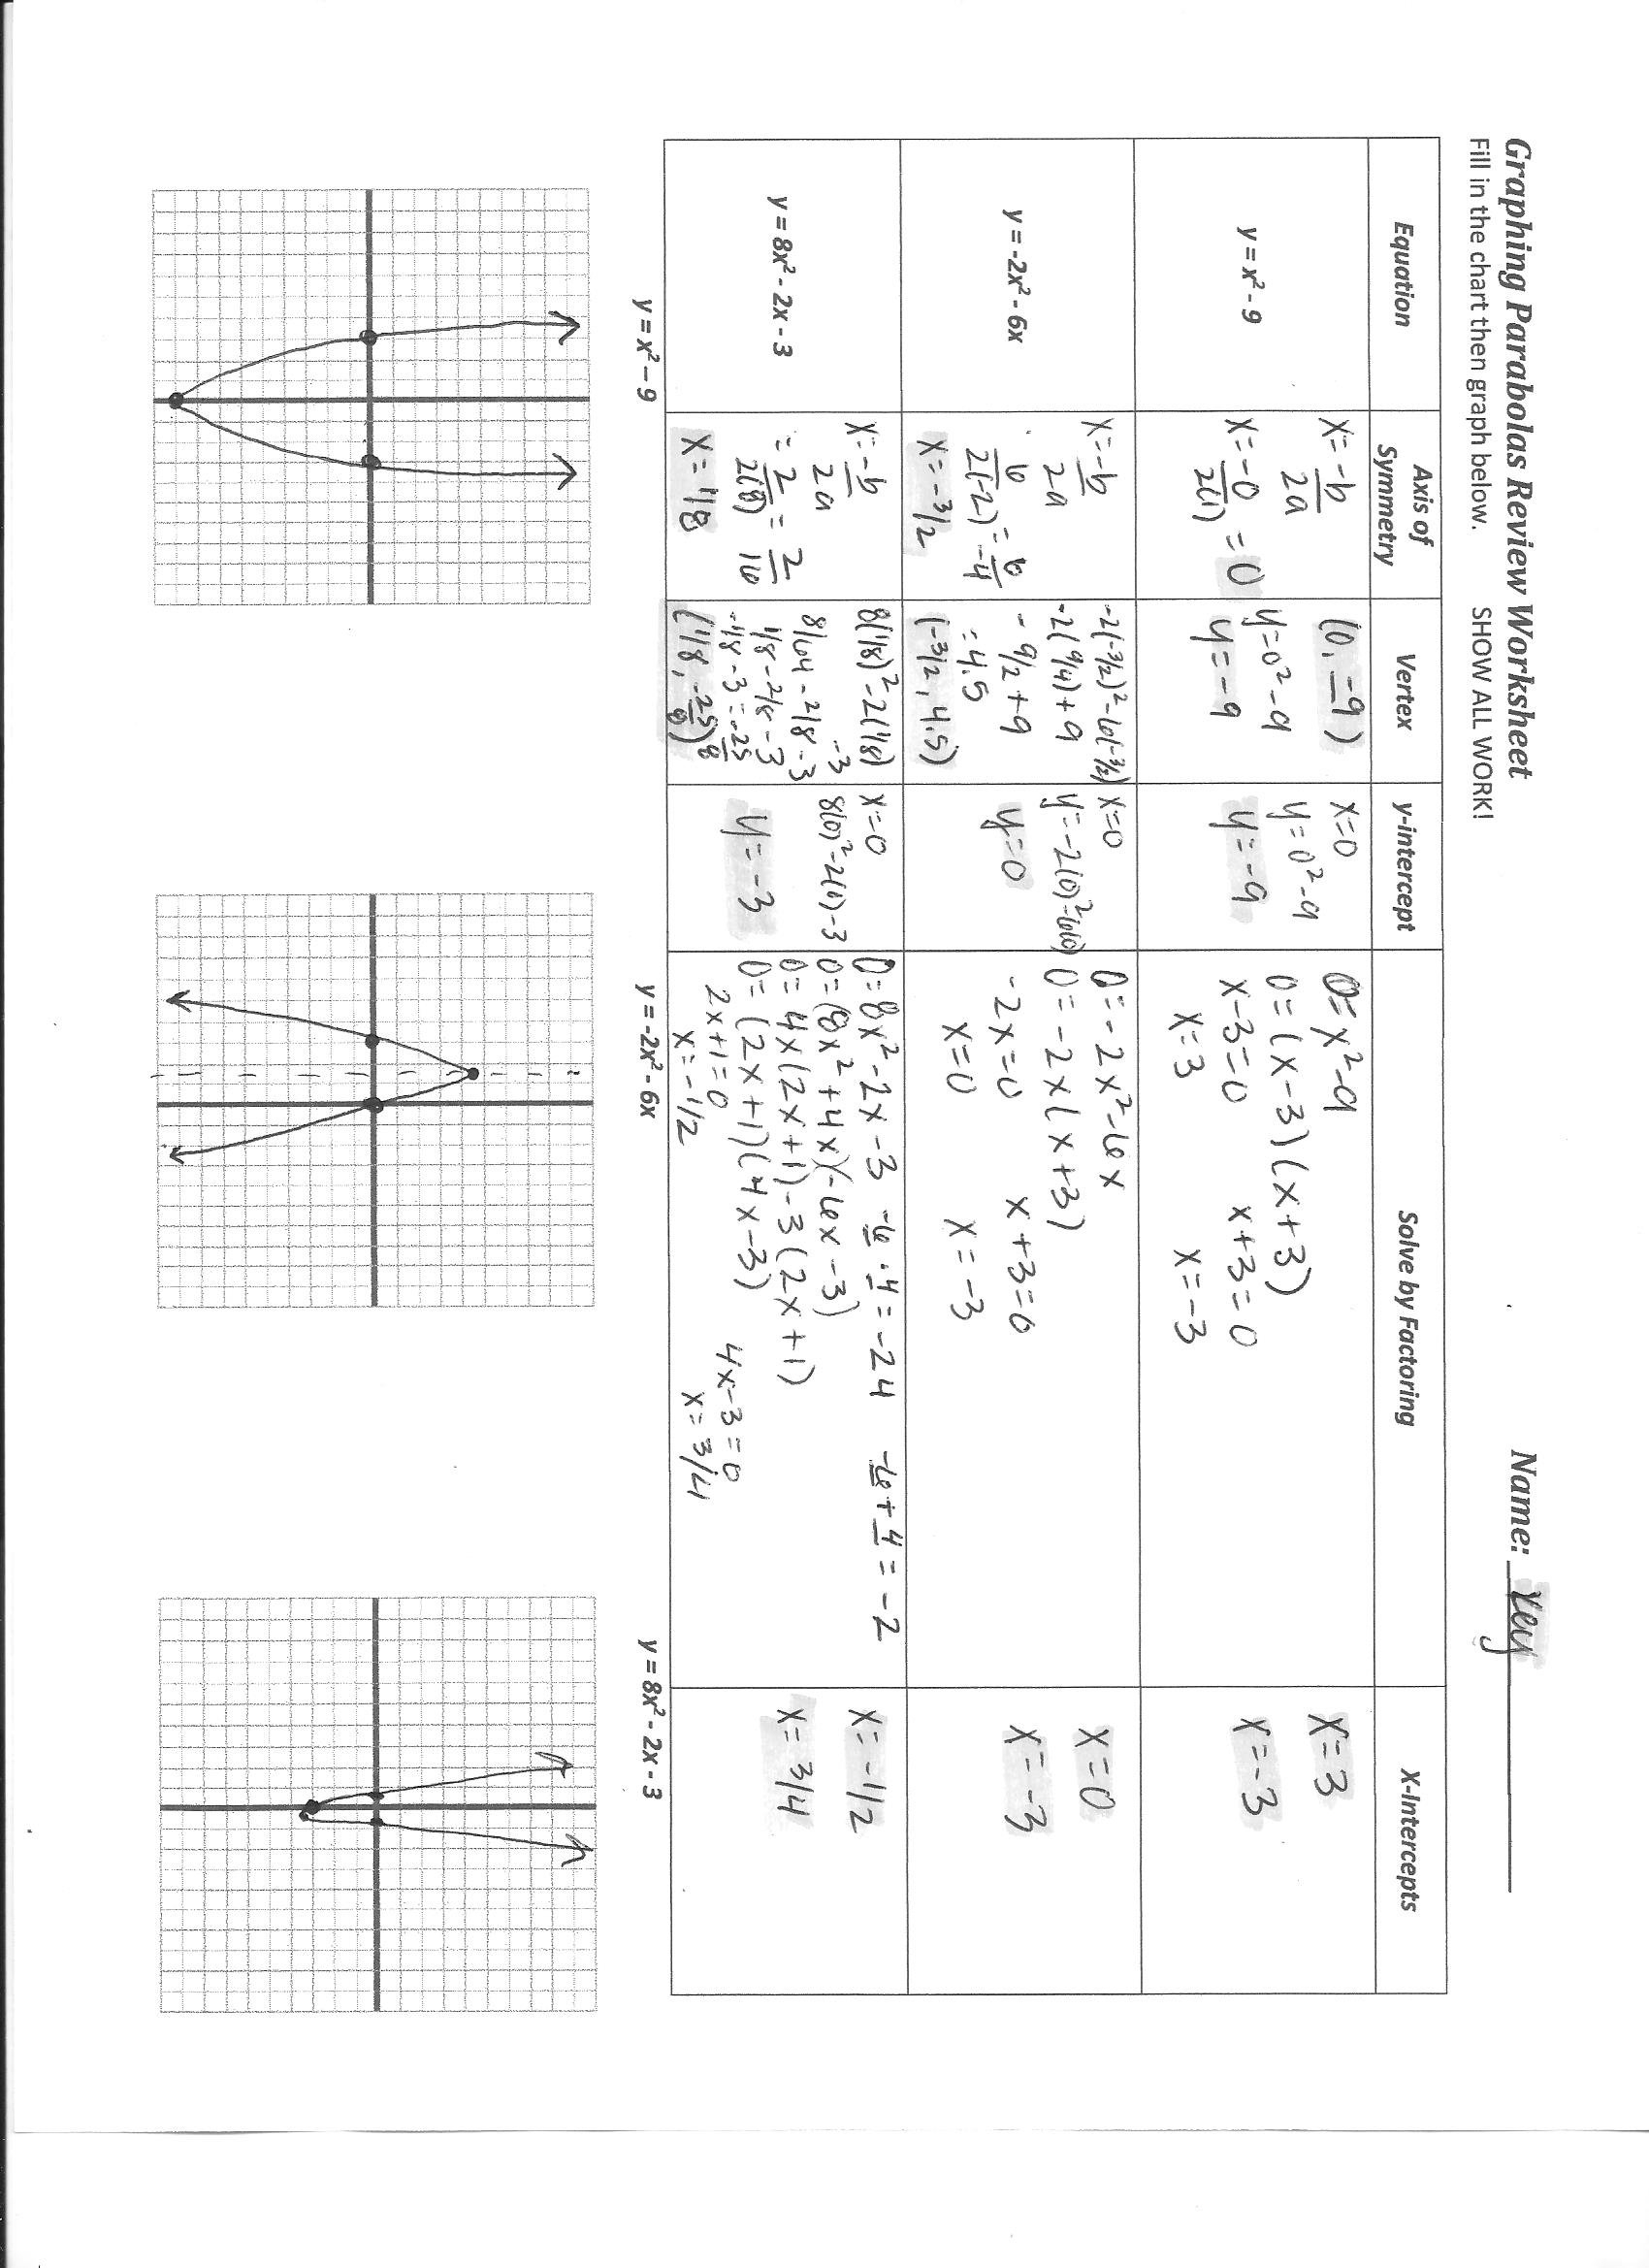 Online Graphs 2018 » Practice Worksheet Graphing Quadratic Functions As Well As Graphing Quadratics Review Worksheet Answers